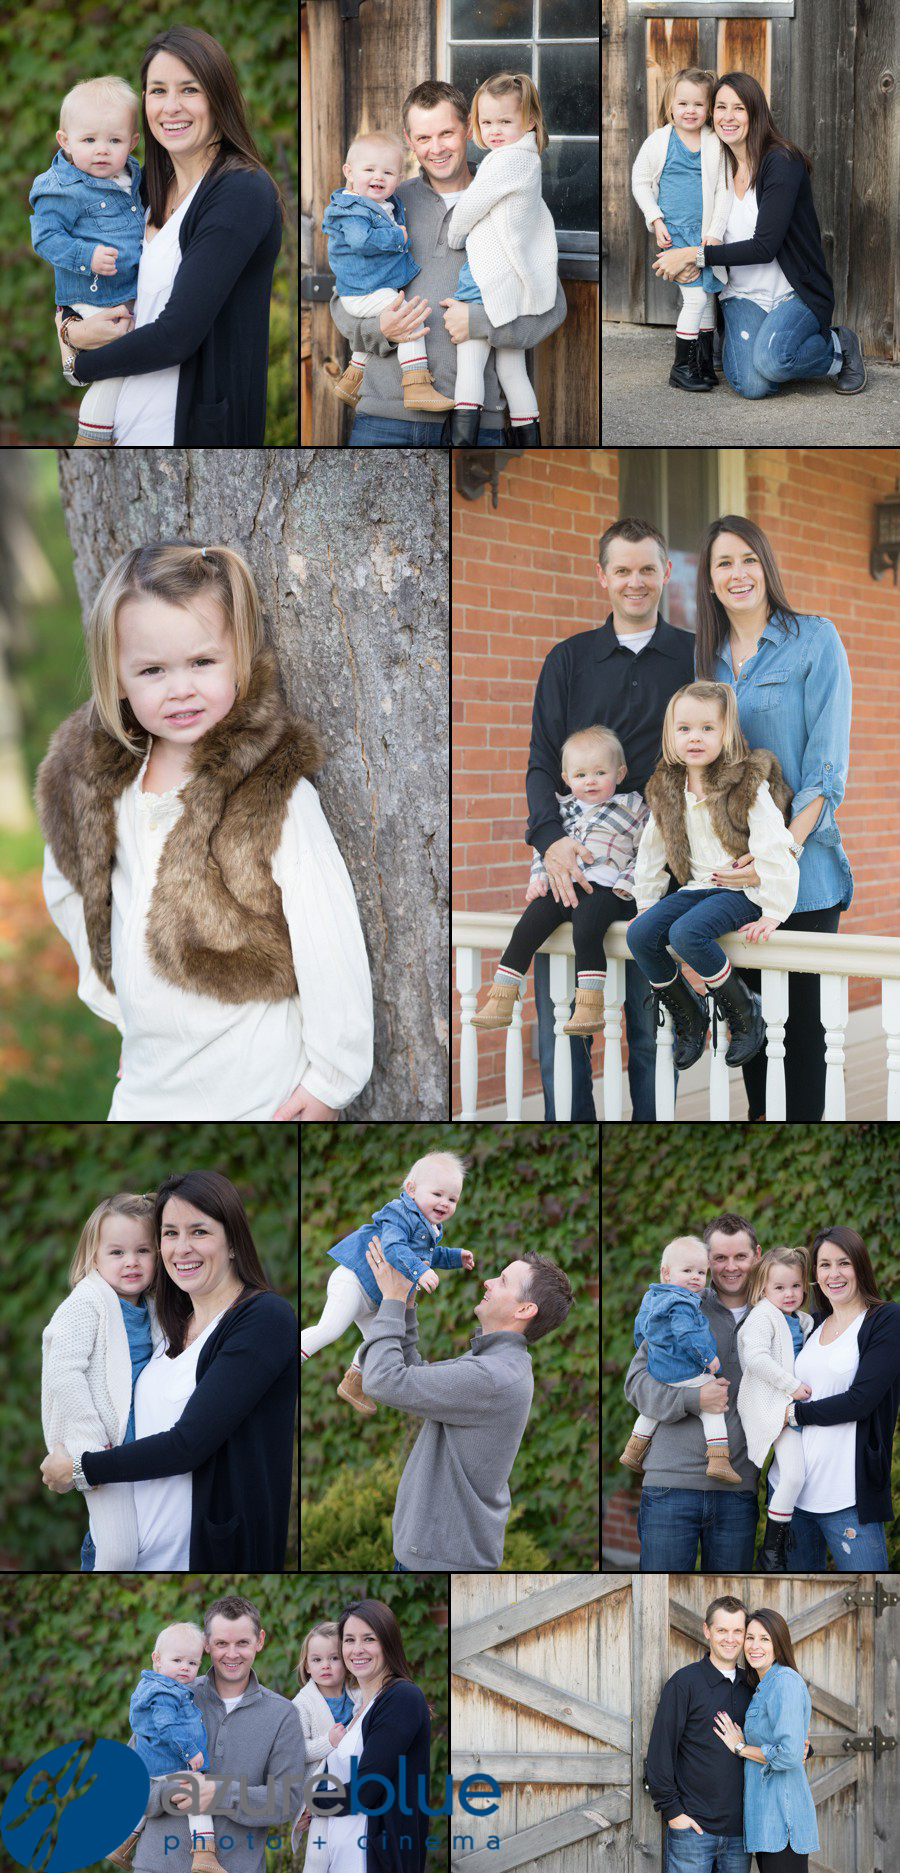 Shannaghn & Kyle – family shoot